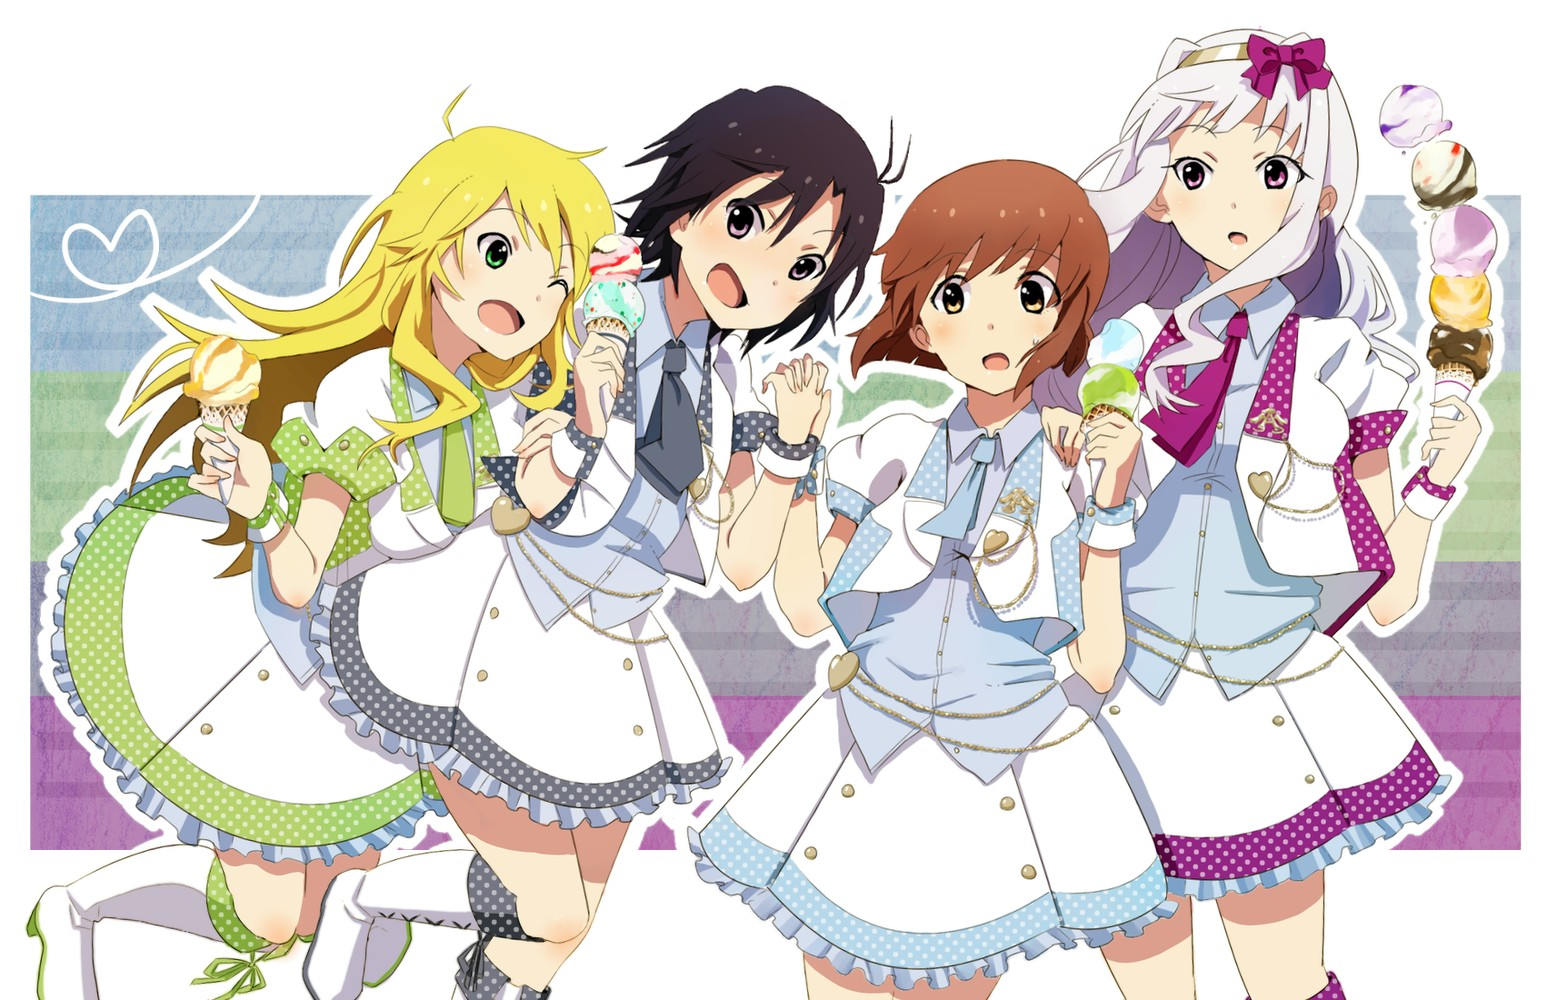 Idol M Ster Anime Characters : The idolm ster zerochan